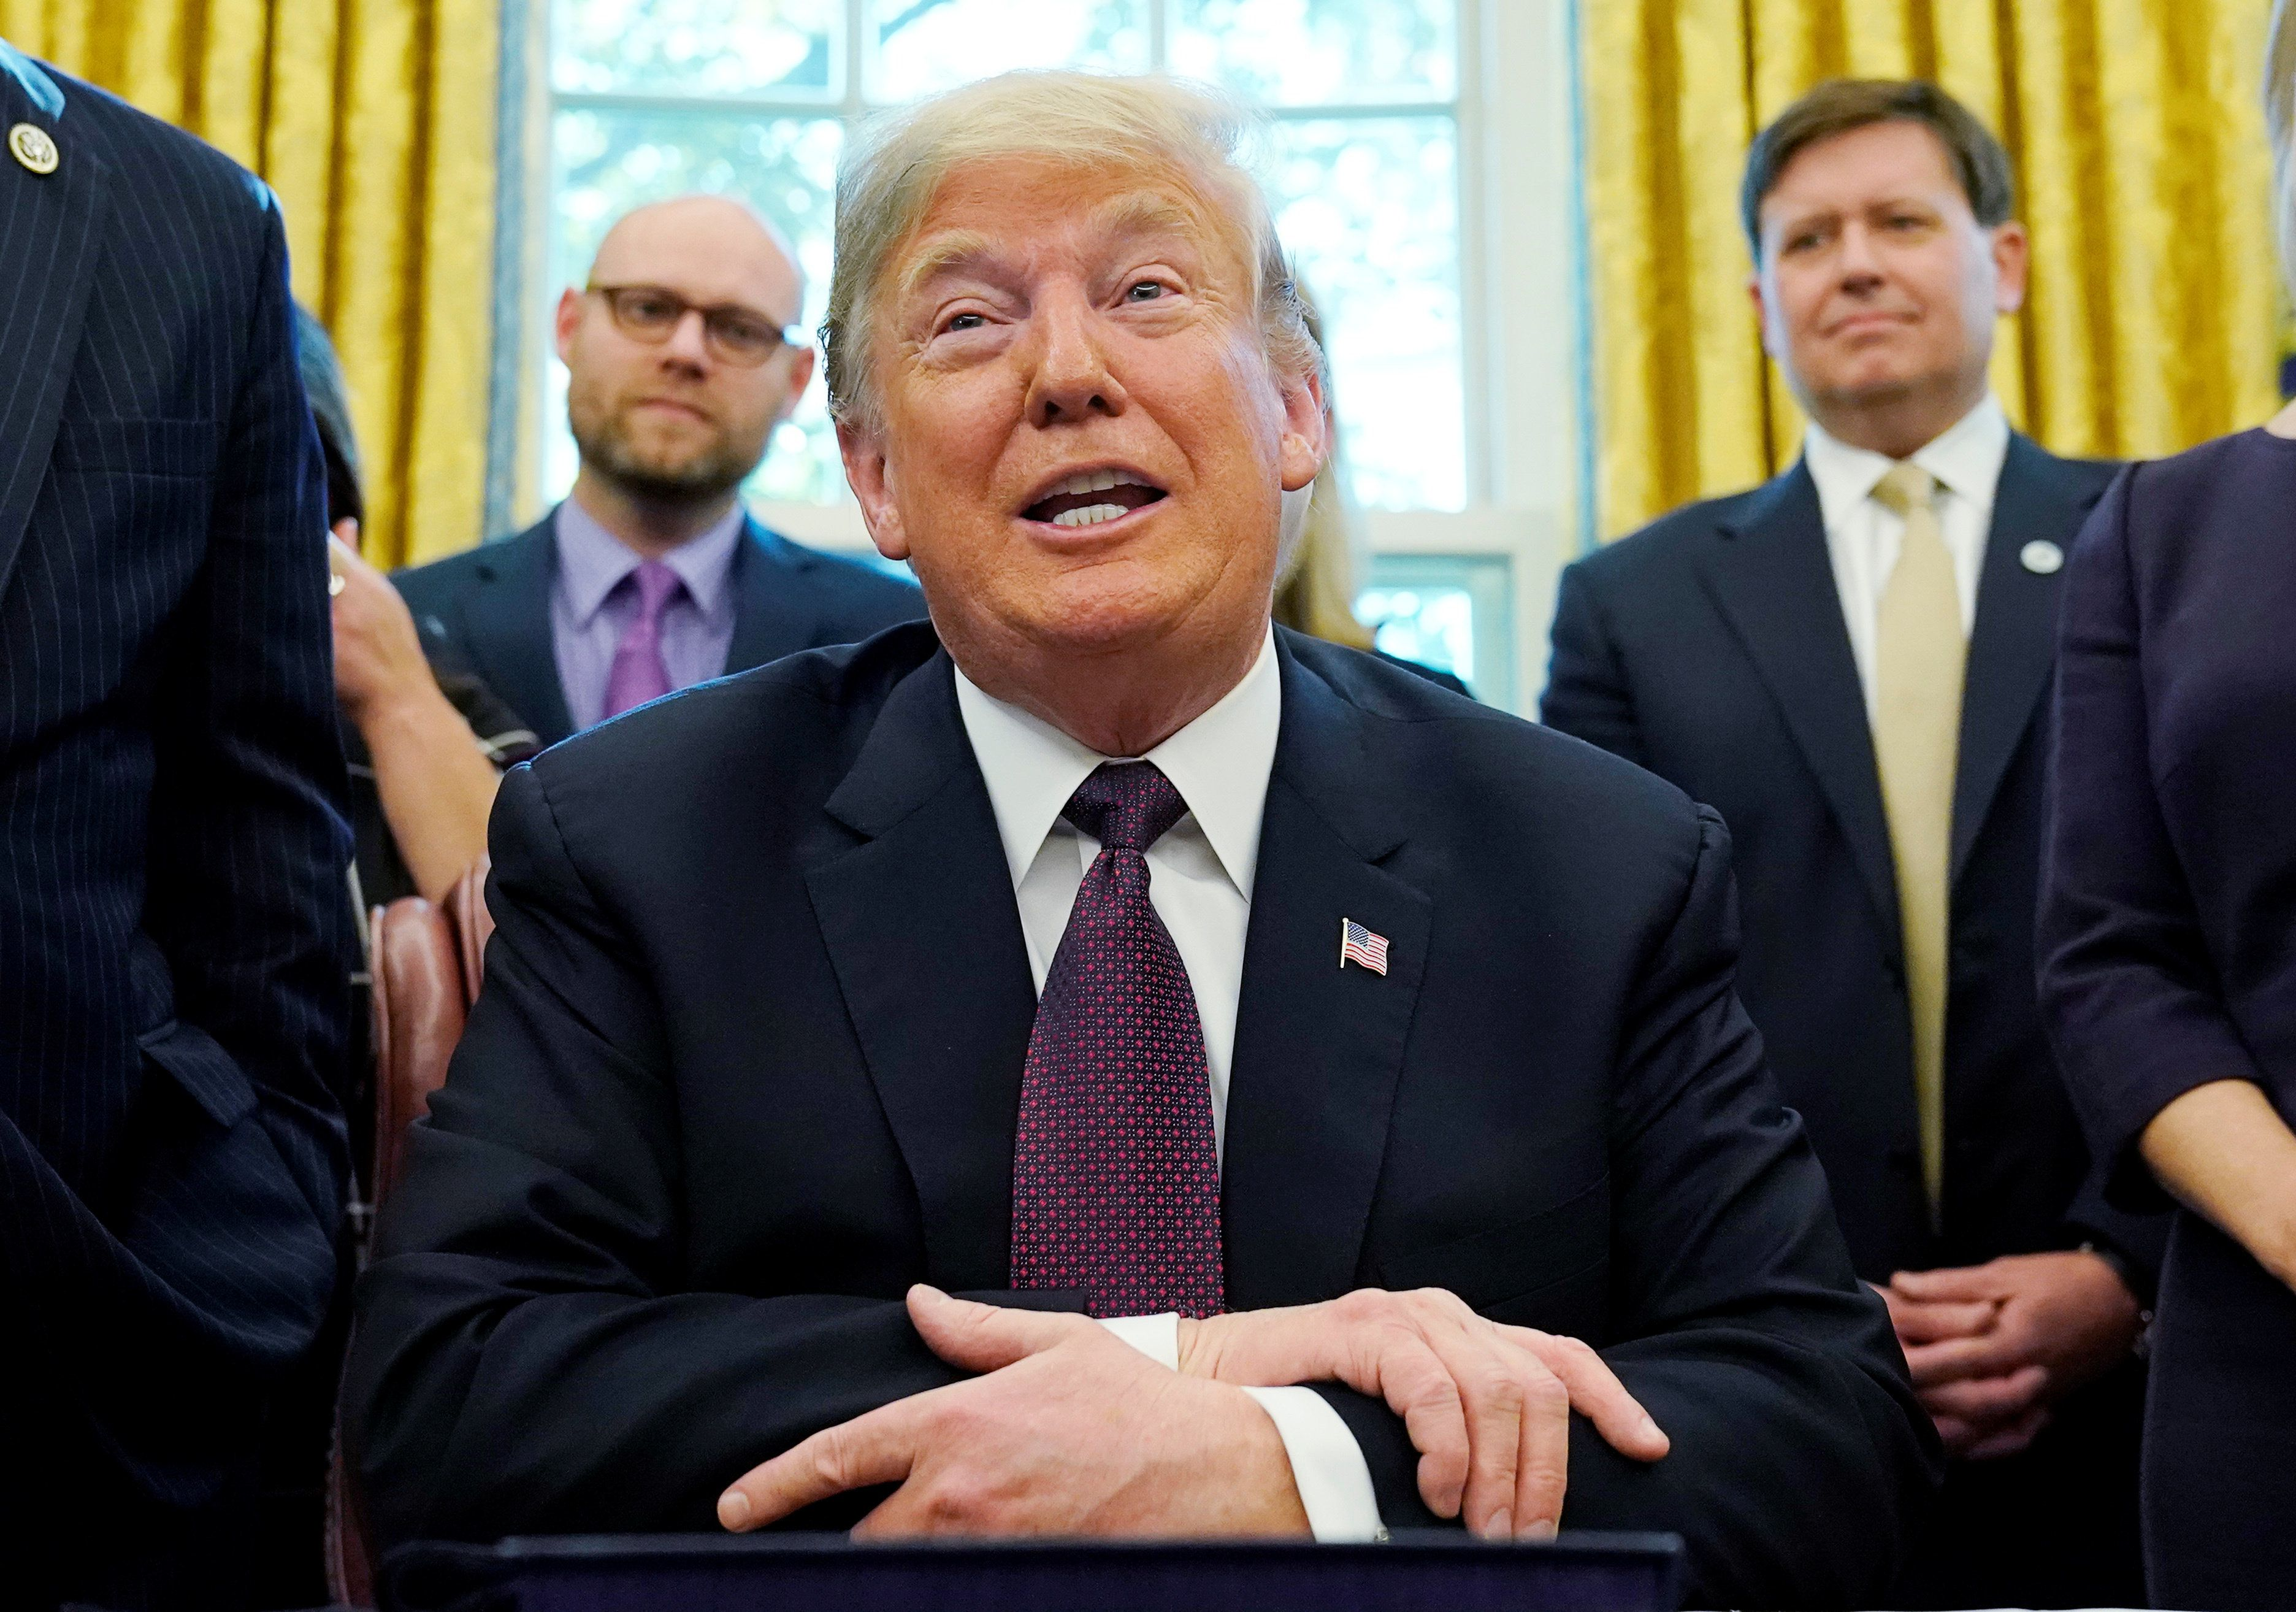 U.S. President Donald Trump talks to reporters at a signing ceremony for the Cybersecurity and Infrastructure Security Agency Act in the Oval Office of the White House in Washington, U.S. November 16, 2018. REUTERS/Jonathan Ernst